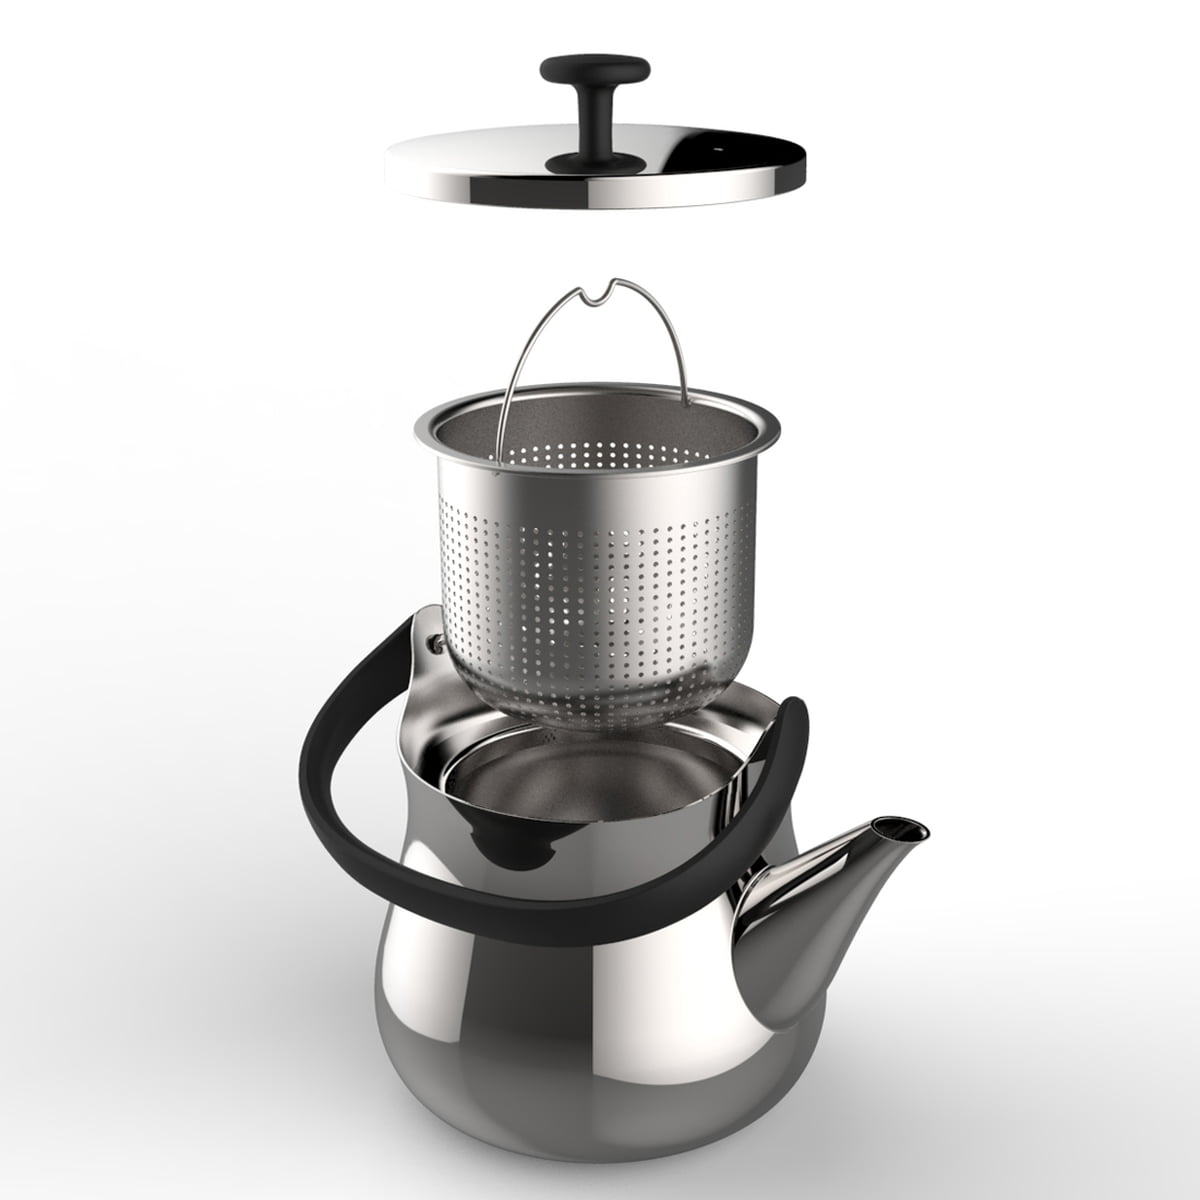 the cha kettle  teapot by alessi - alessi  cha kettle  teapot individual parts